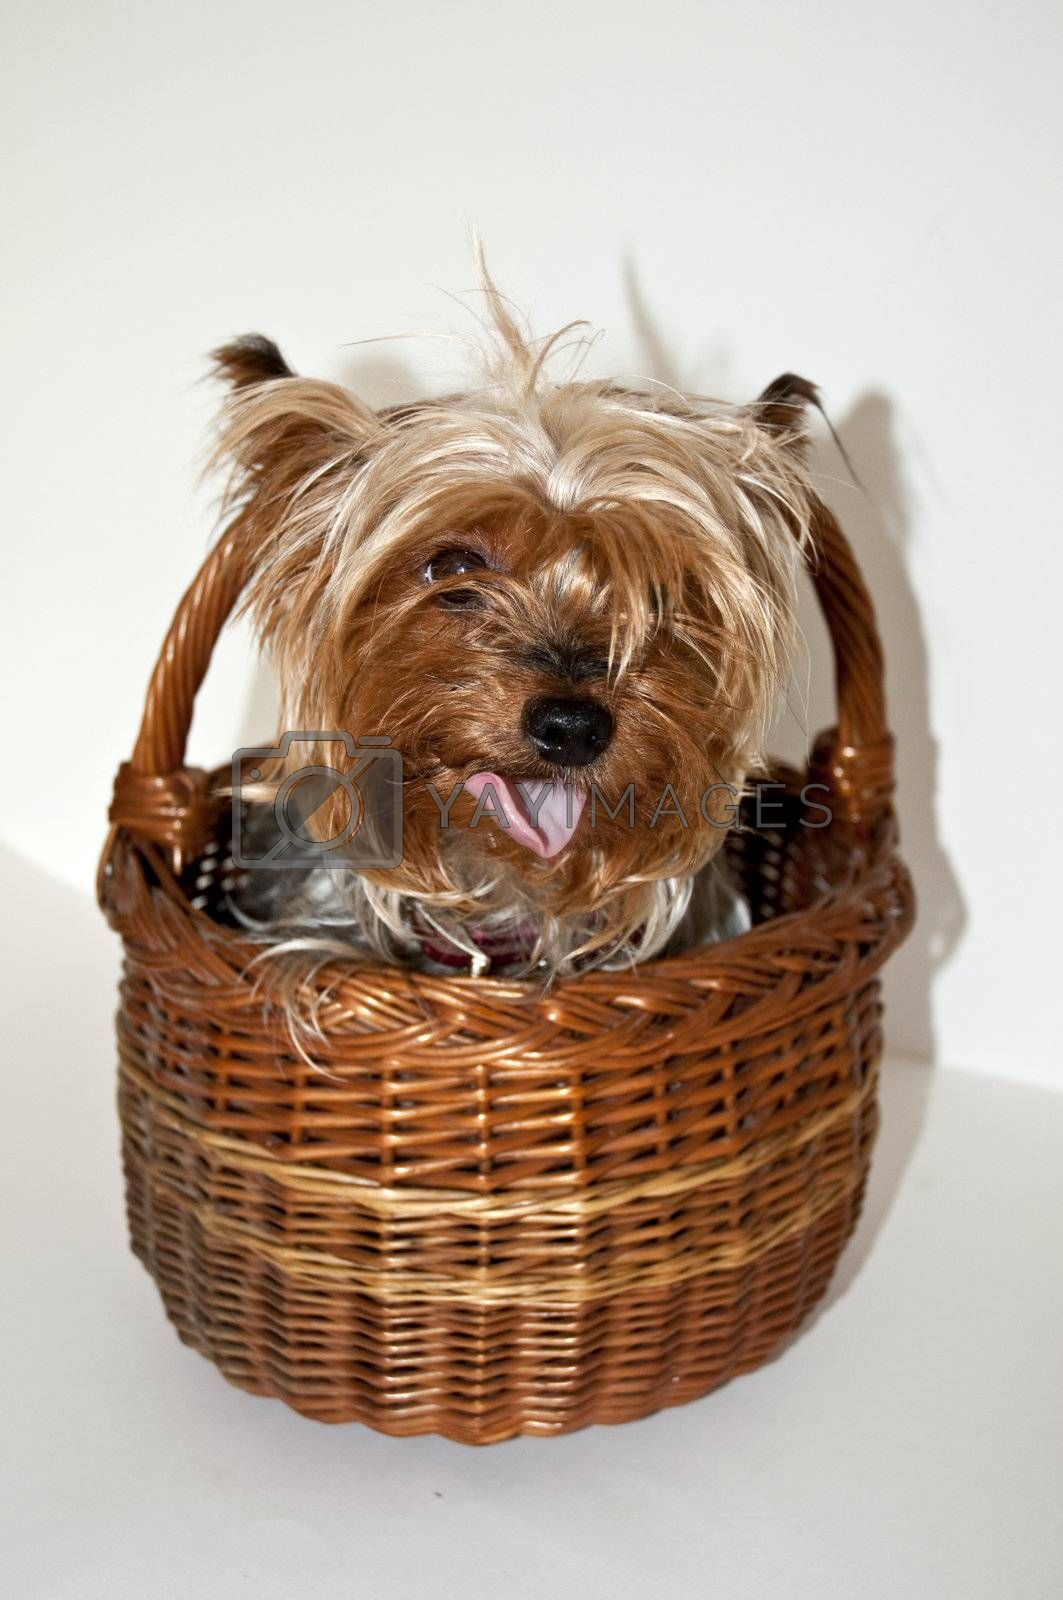 small toy dog in a basket yorkshire